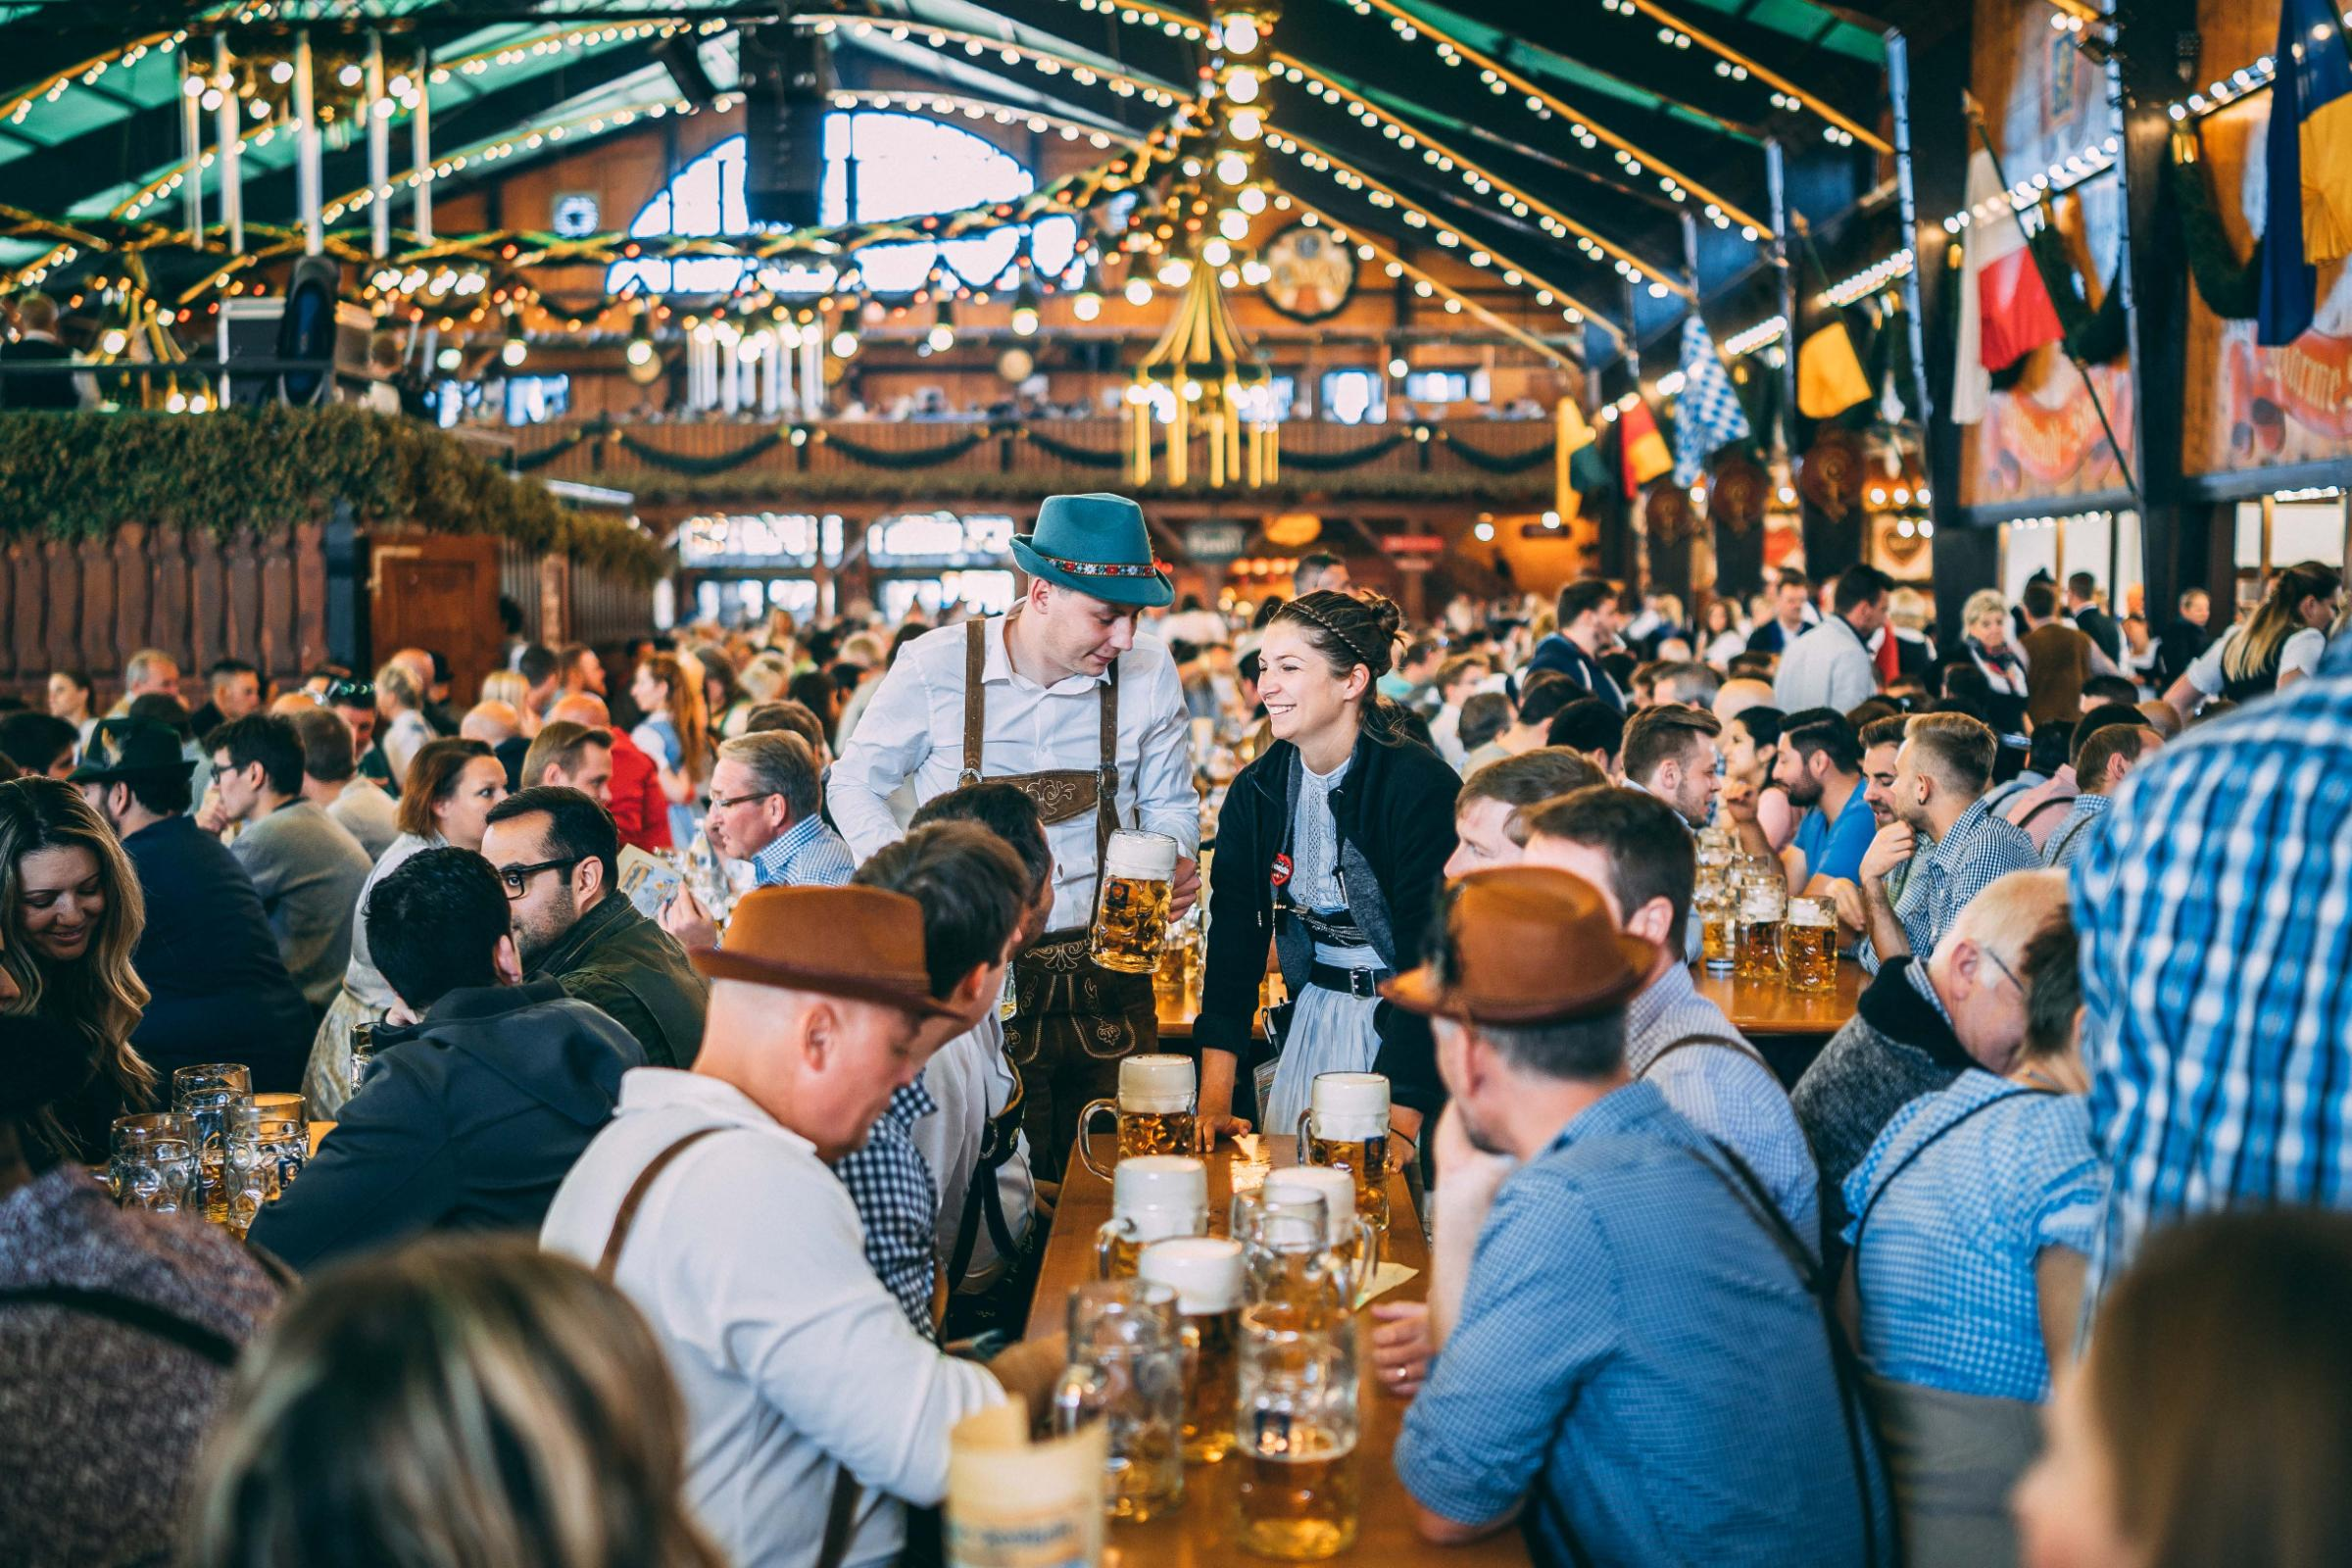 Some highlights of the Oktoberfest USA in La Crosse